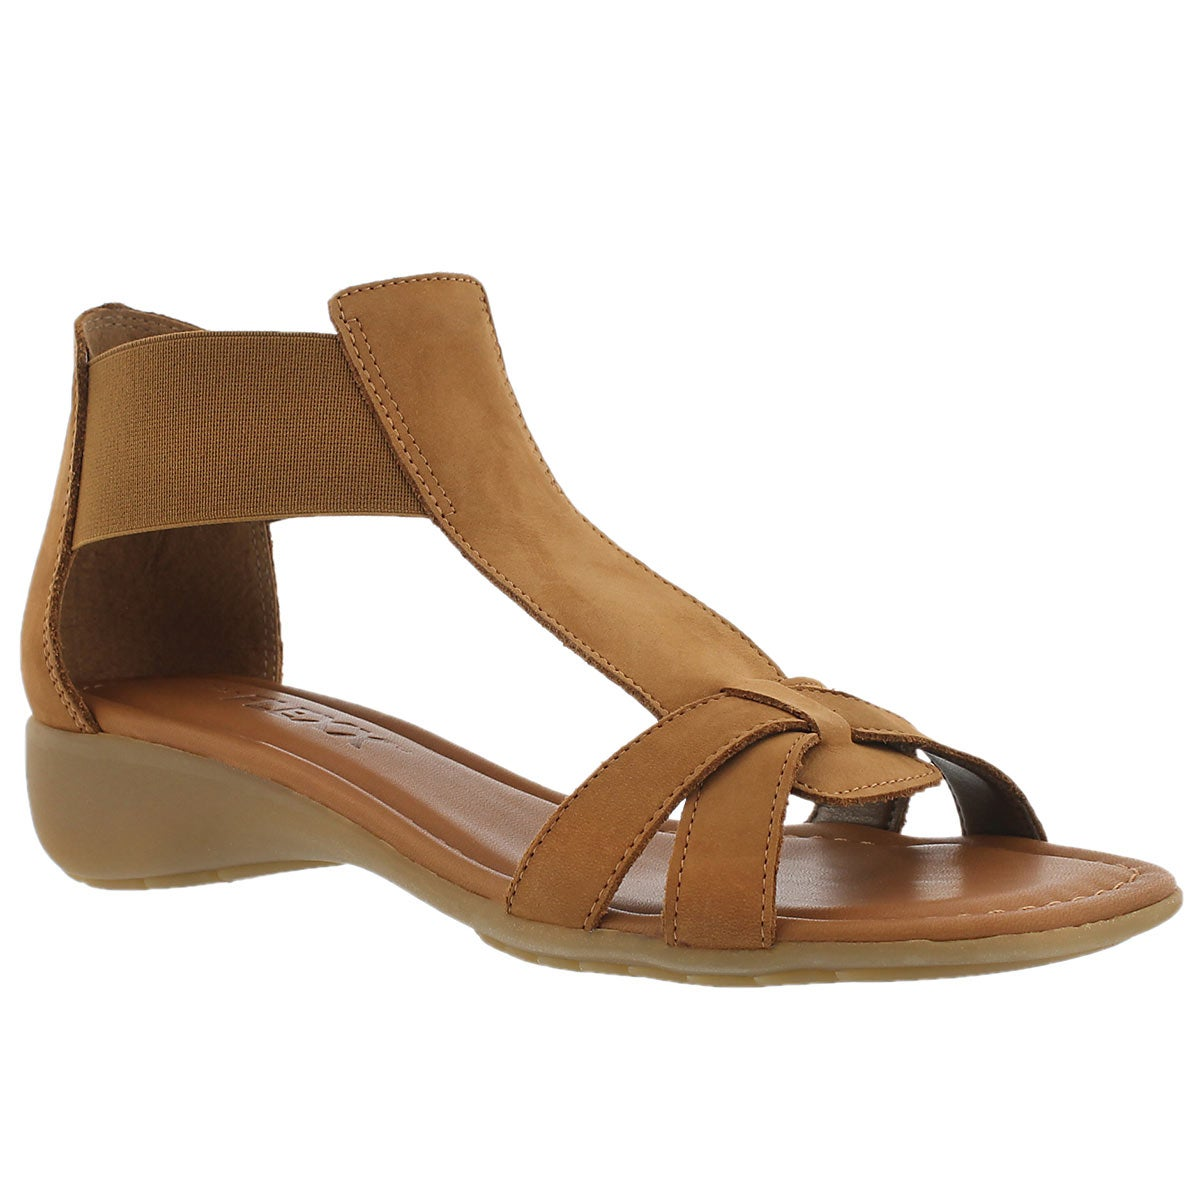 Lds Band Together virginia casual sandal